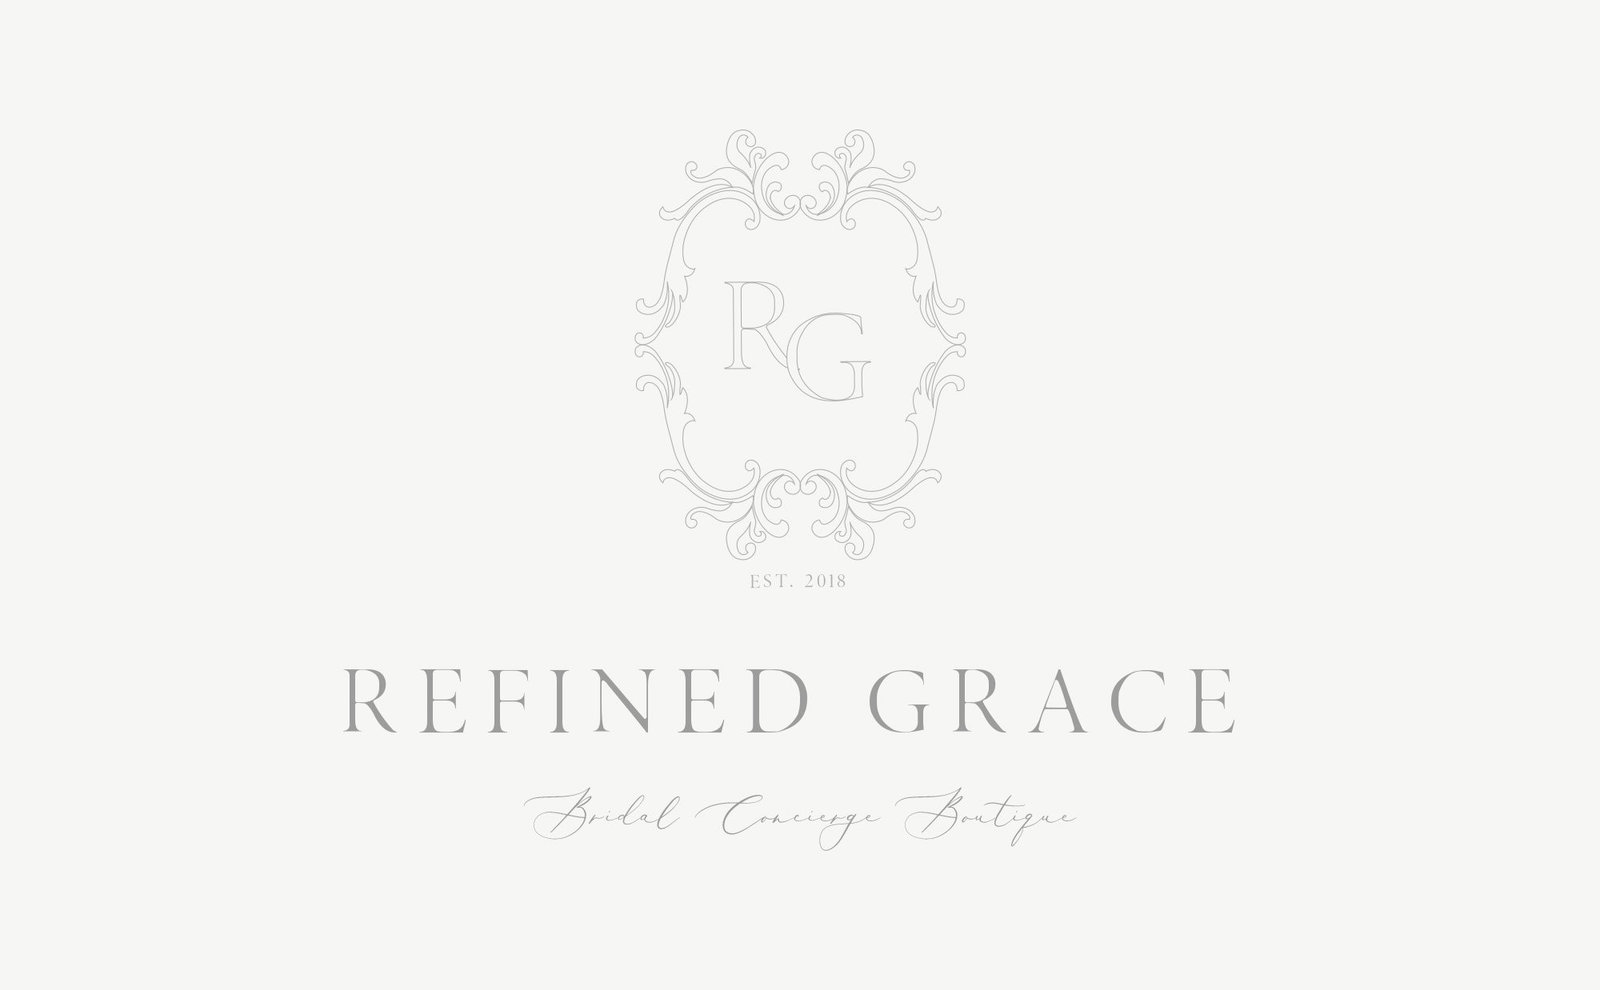 refined-grace-logo